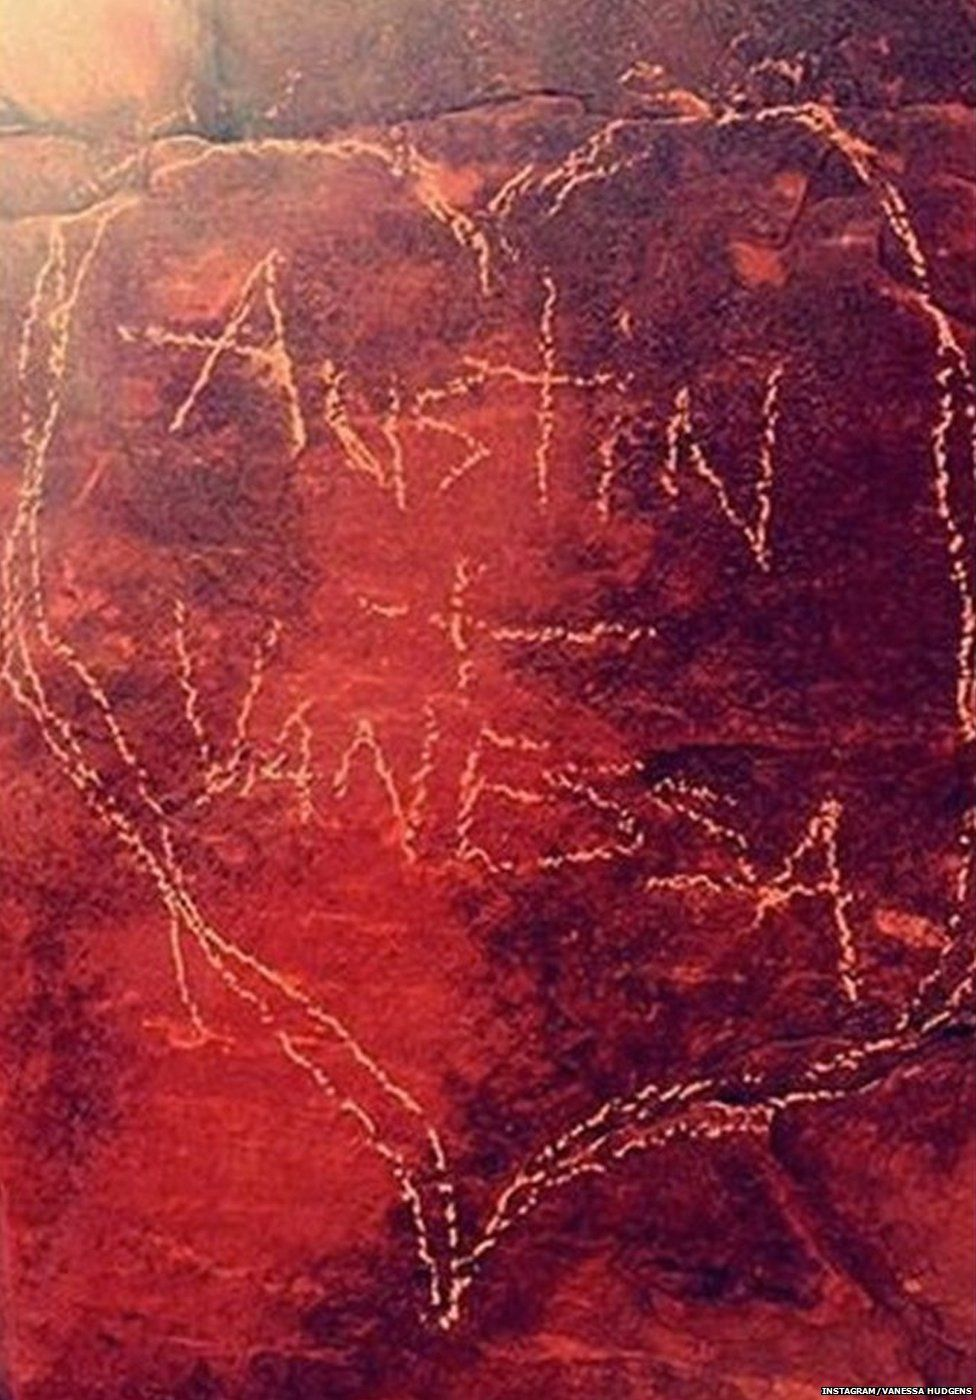 Deleted picture of Vanessa Hudgens' rock carving